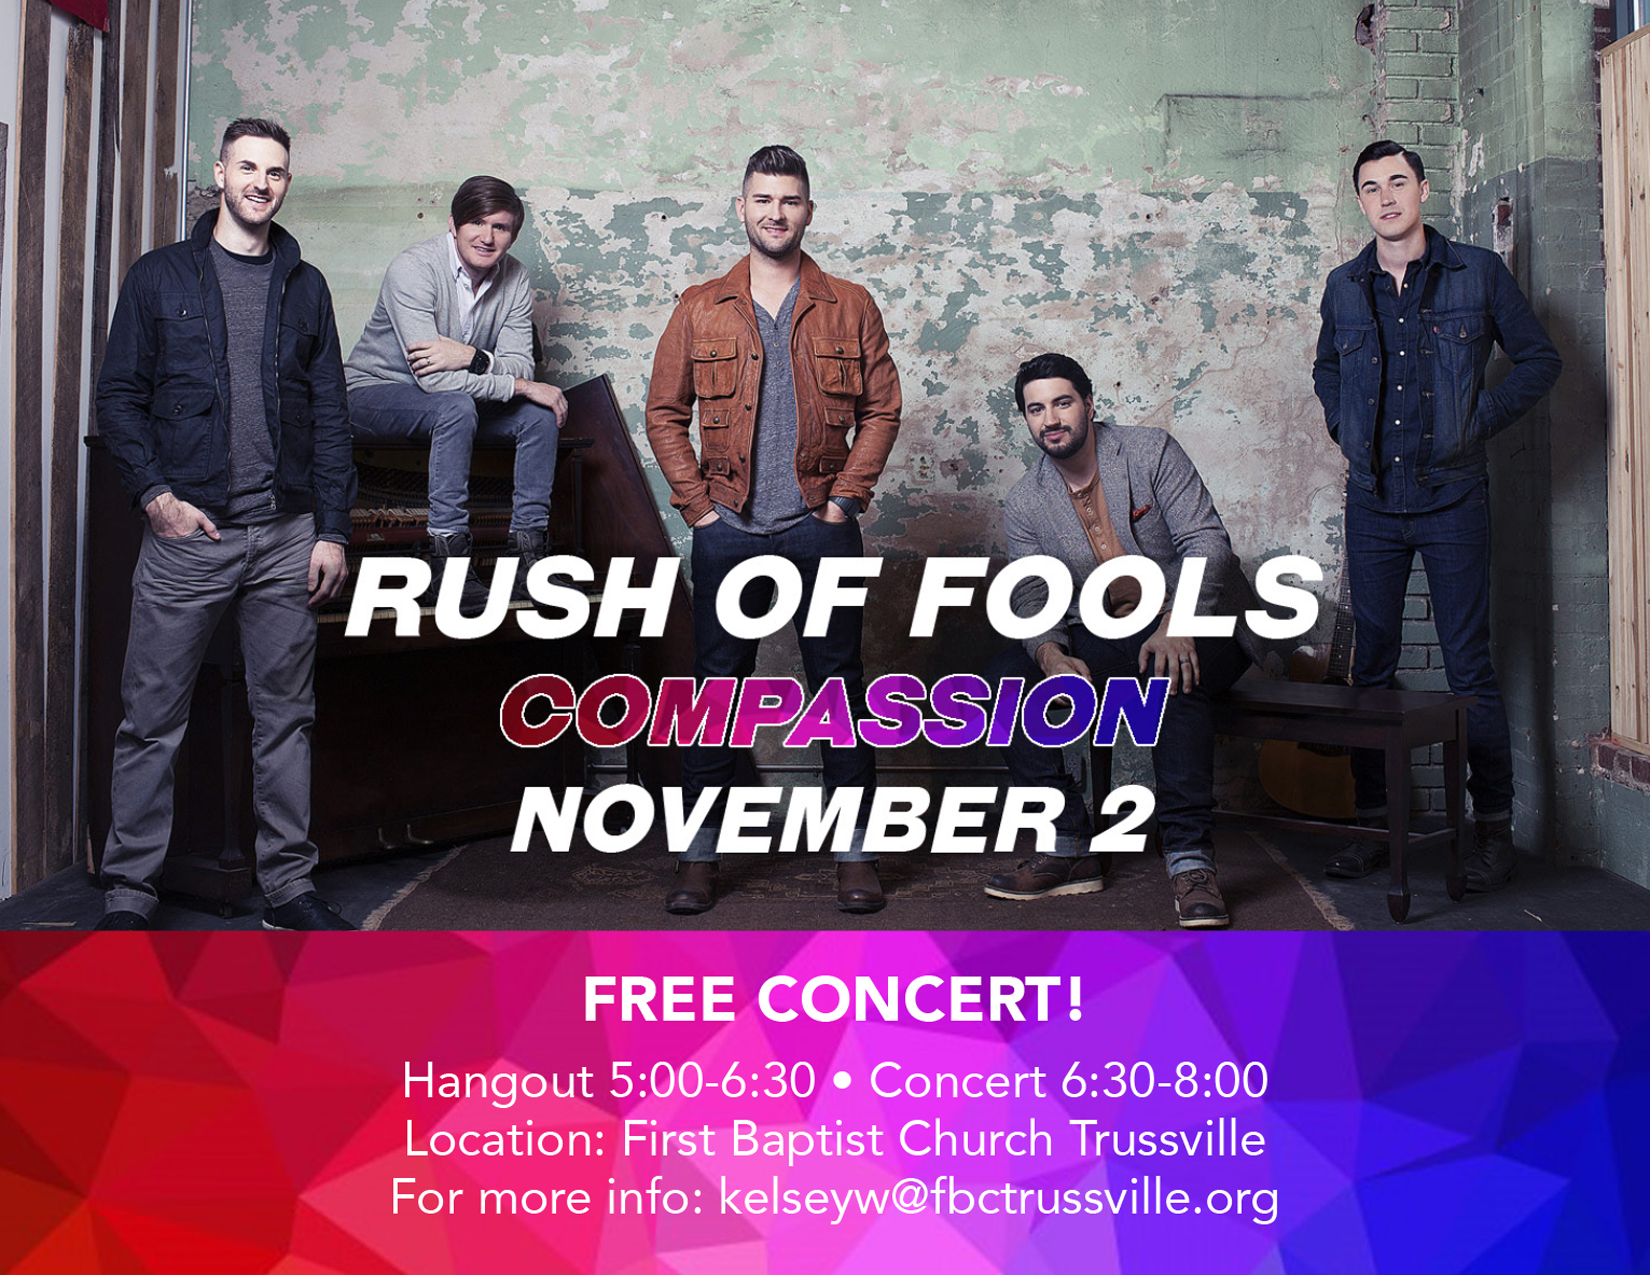 First Baptist Trussville to host Rush of Fools for free concert